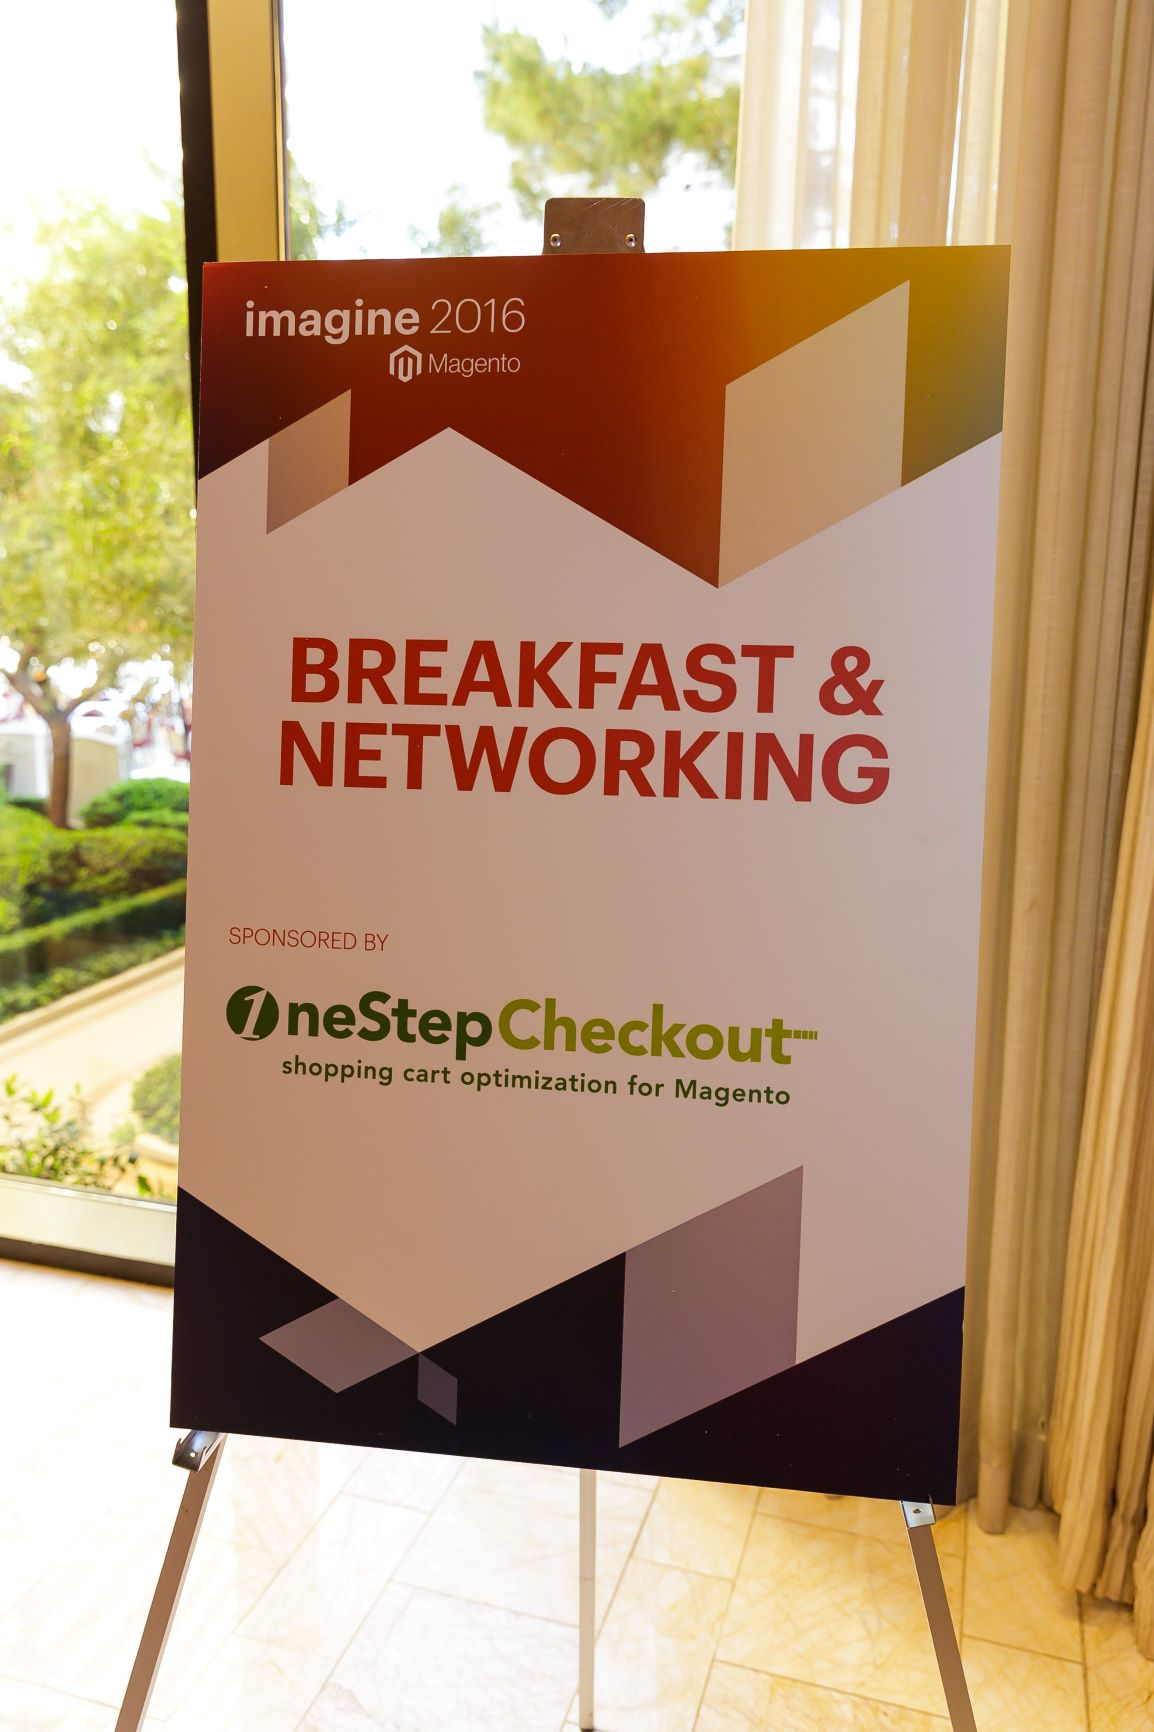 OneStepCheckout Sponsors at Magento Imagine 2016